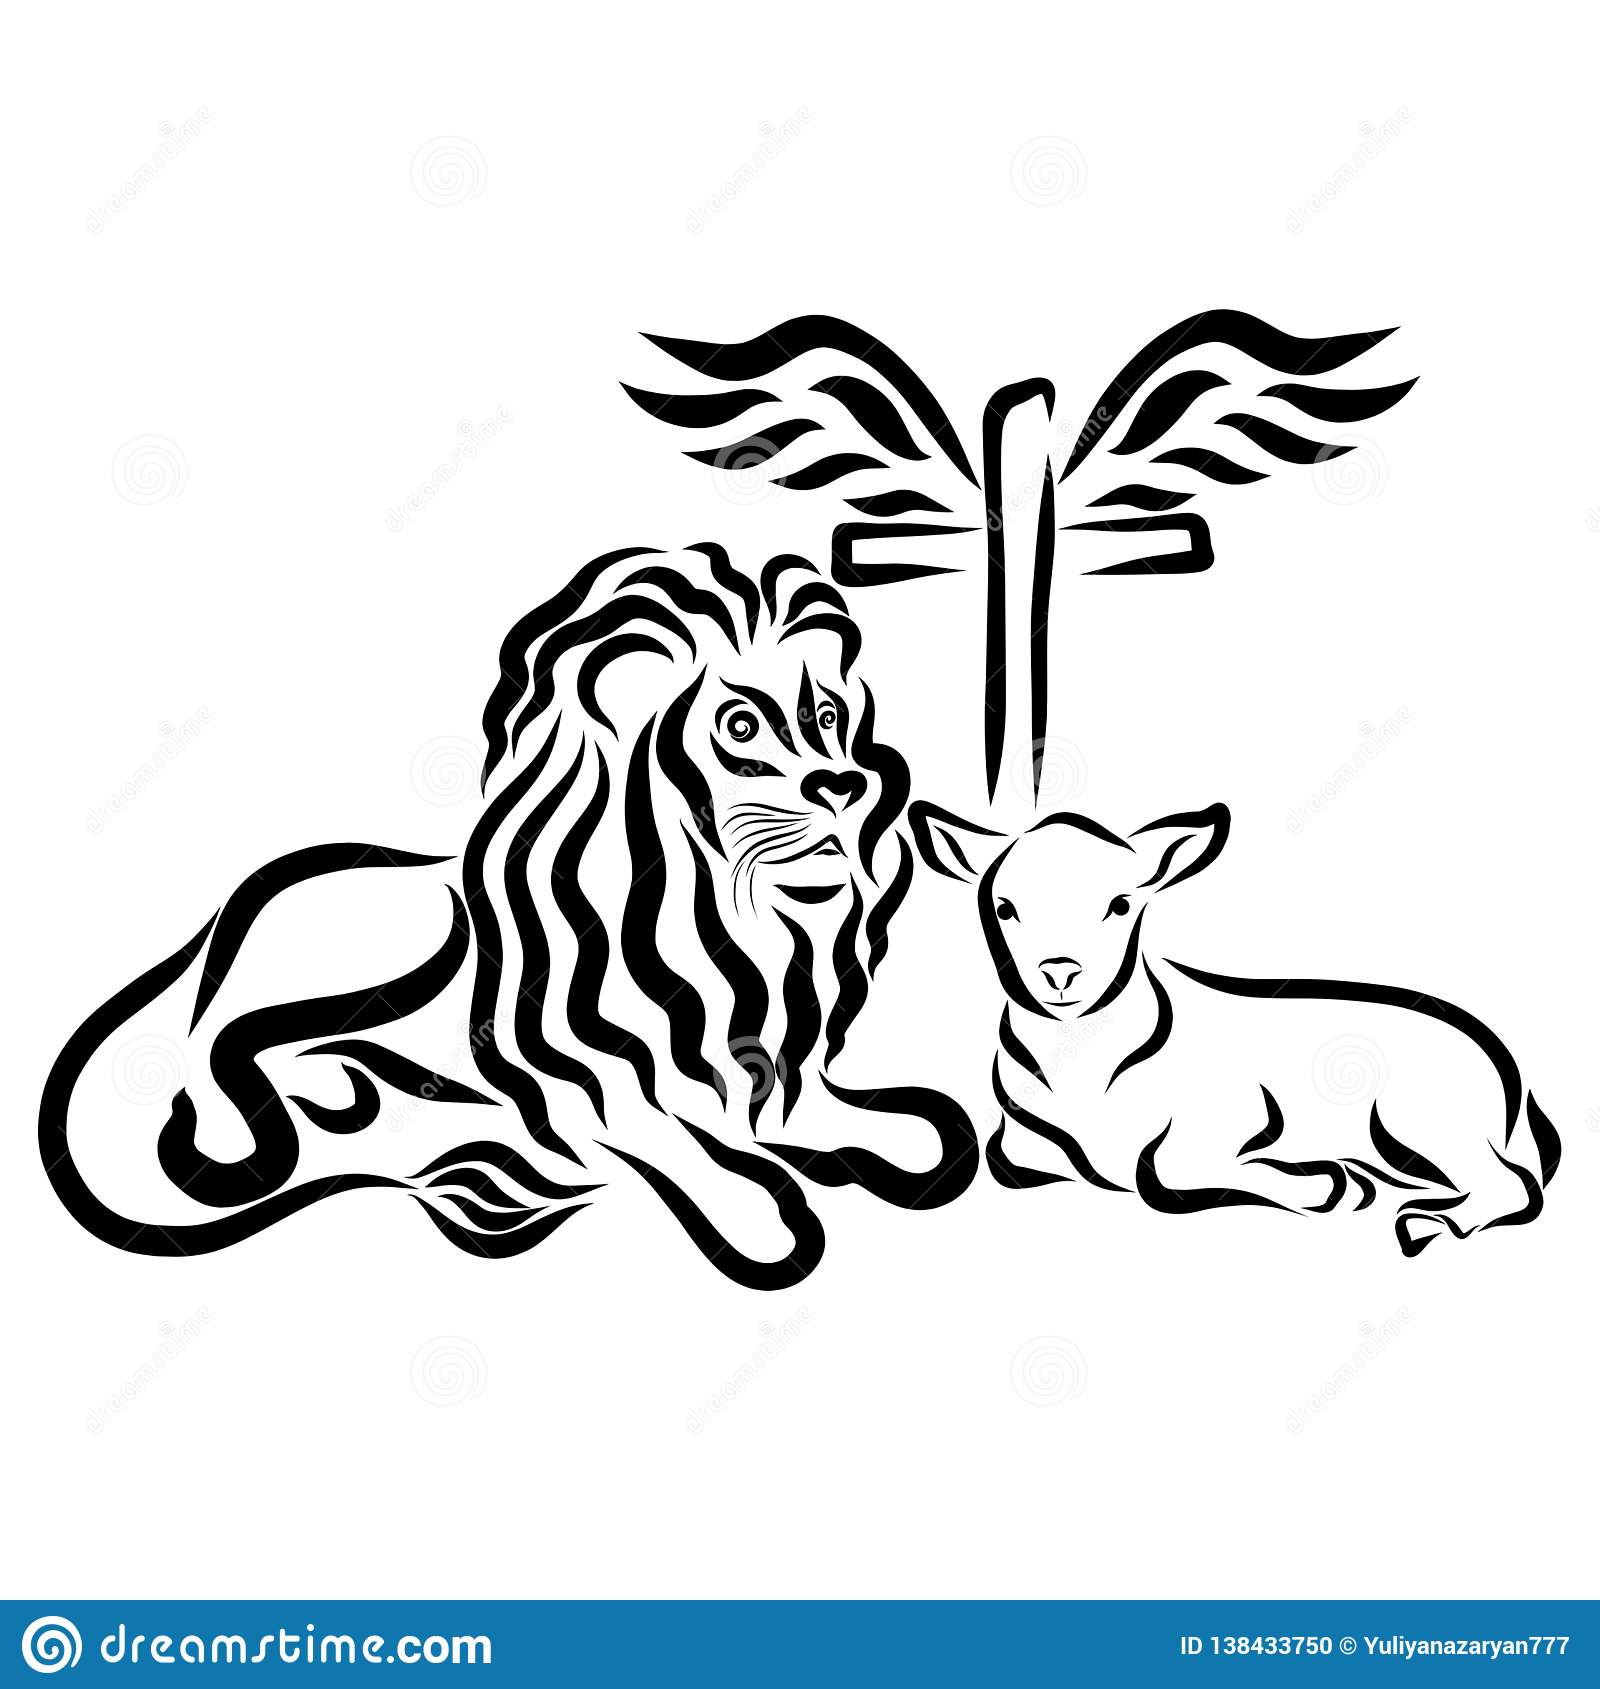 Lion Lamb And Cross With Wings Symbolism Stock Illustration